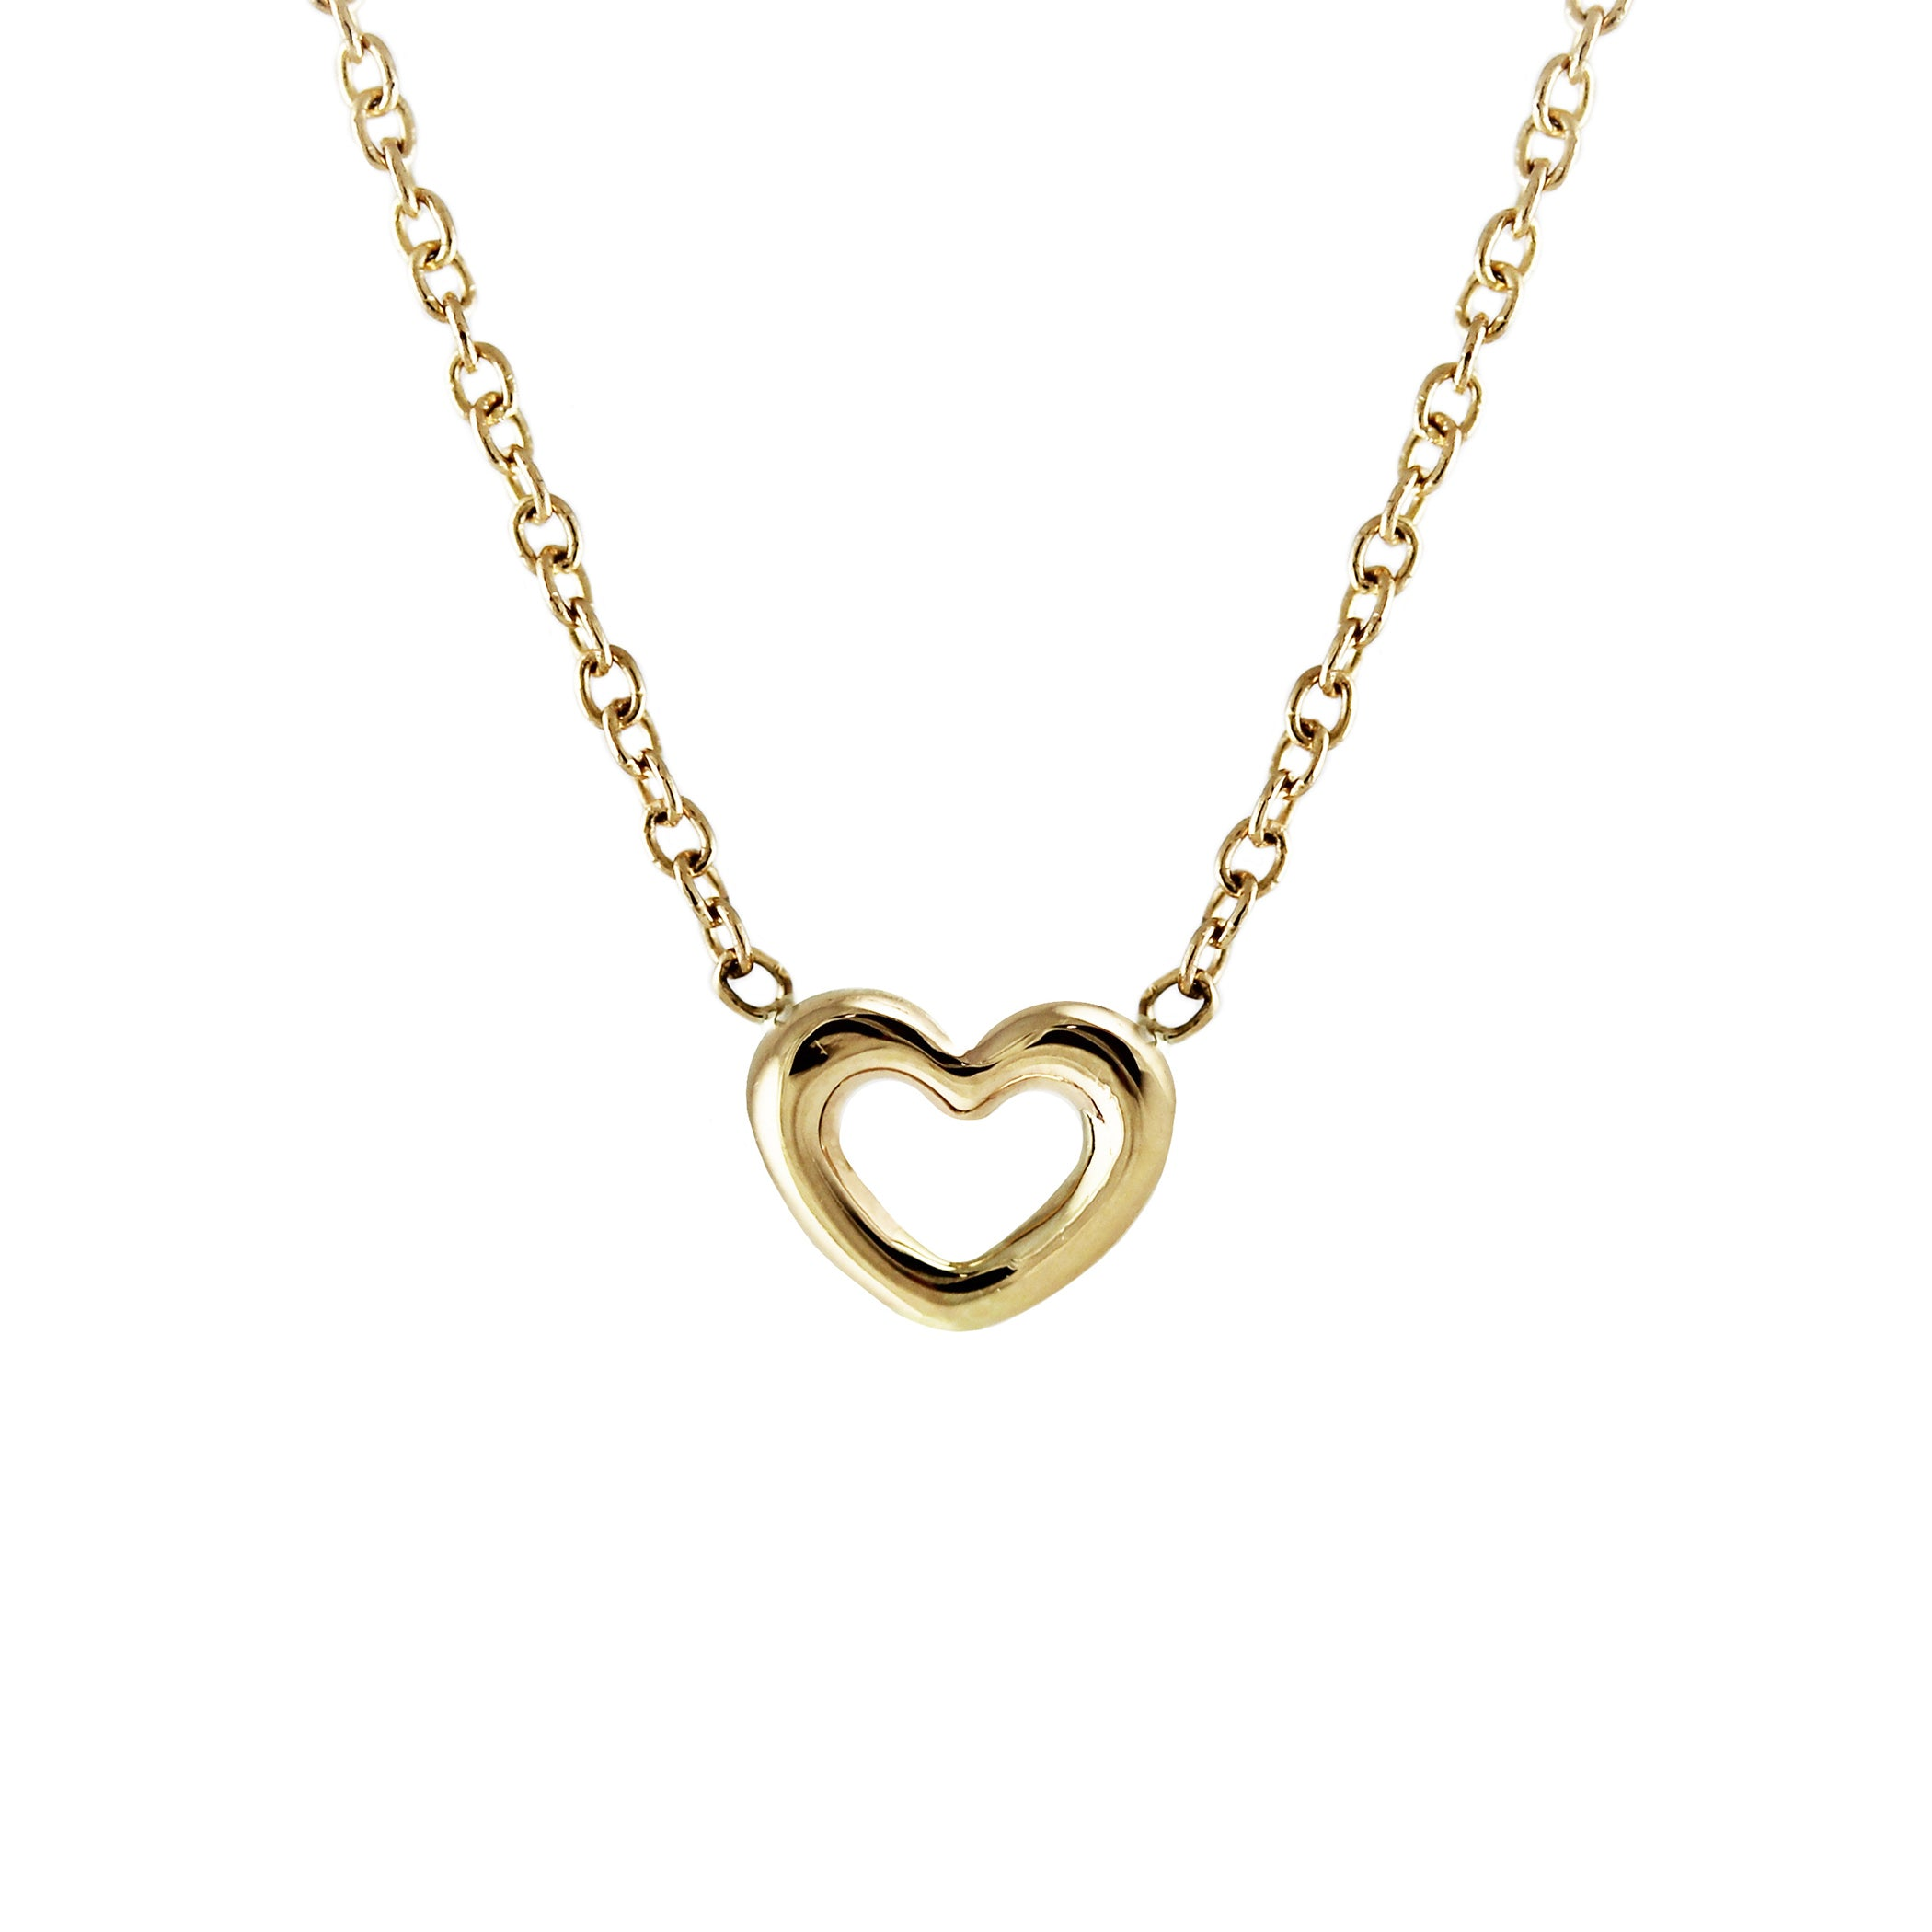 co pendant heart diamond tiffany lock necklace yellow gold mini